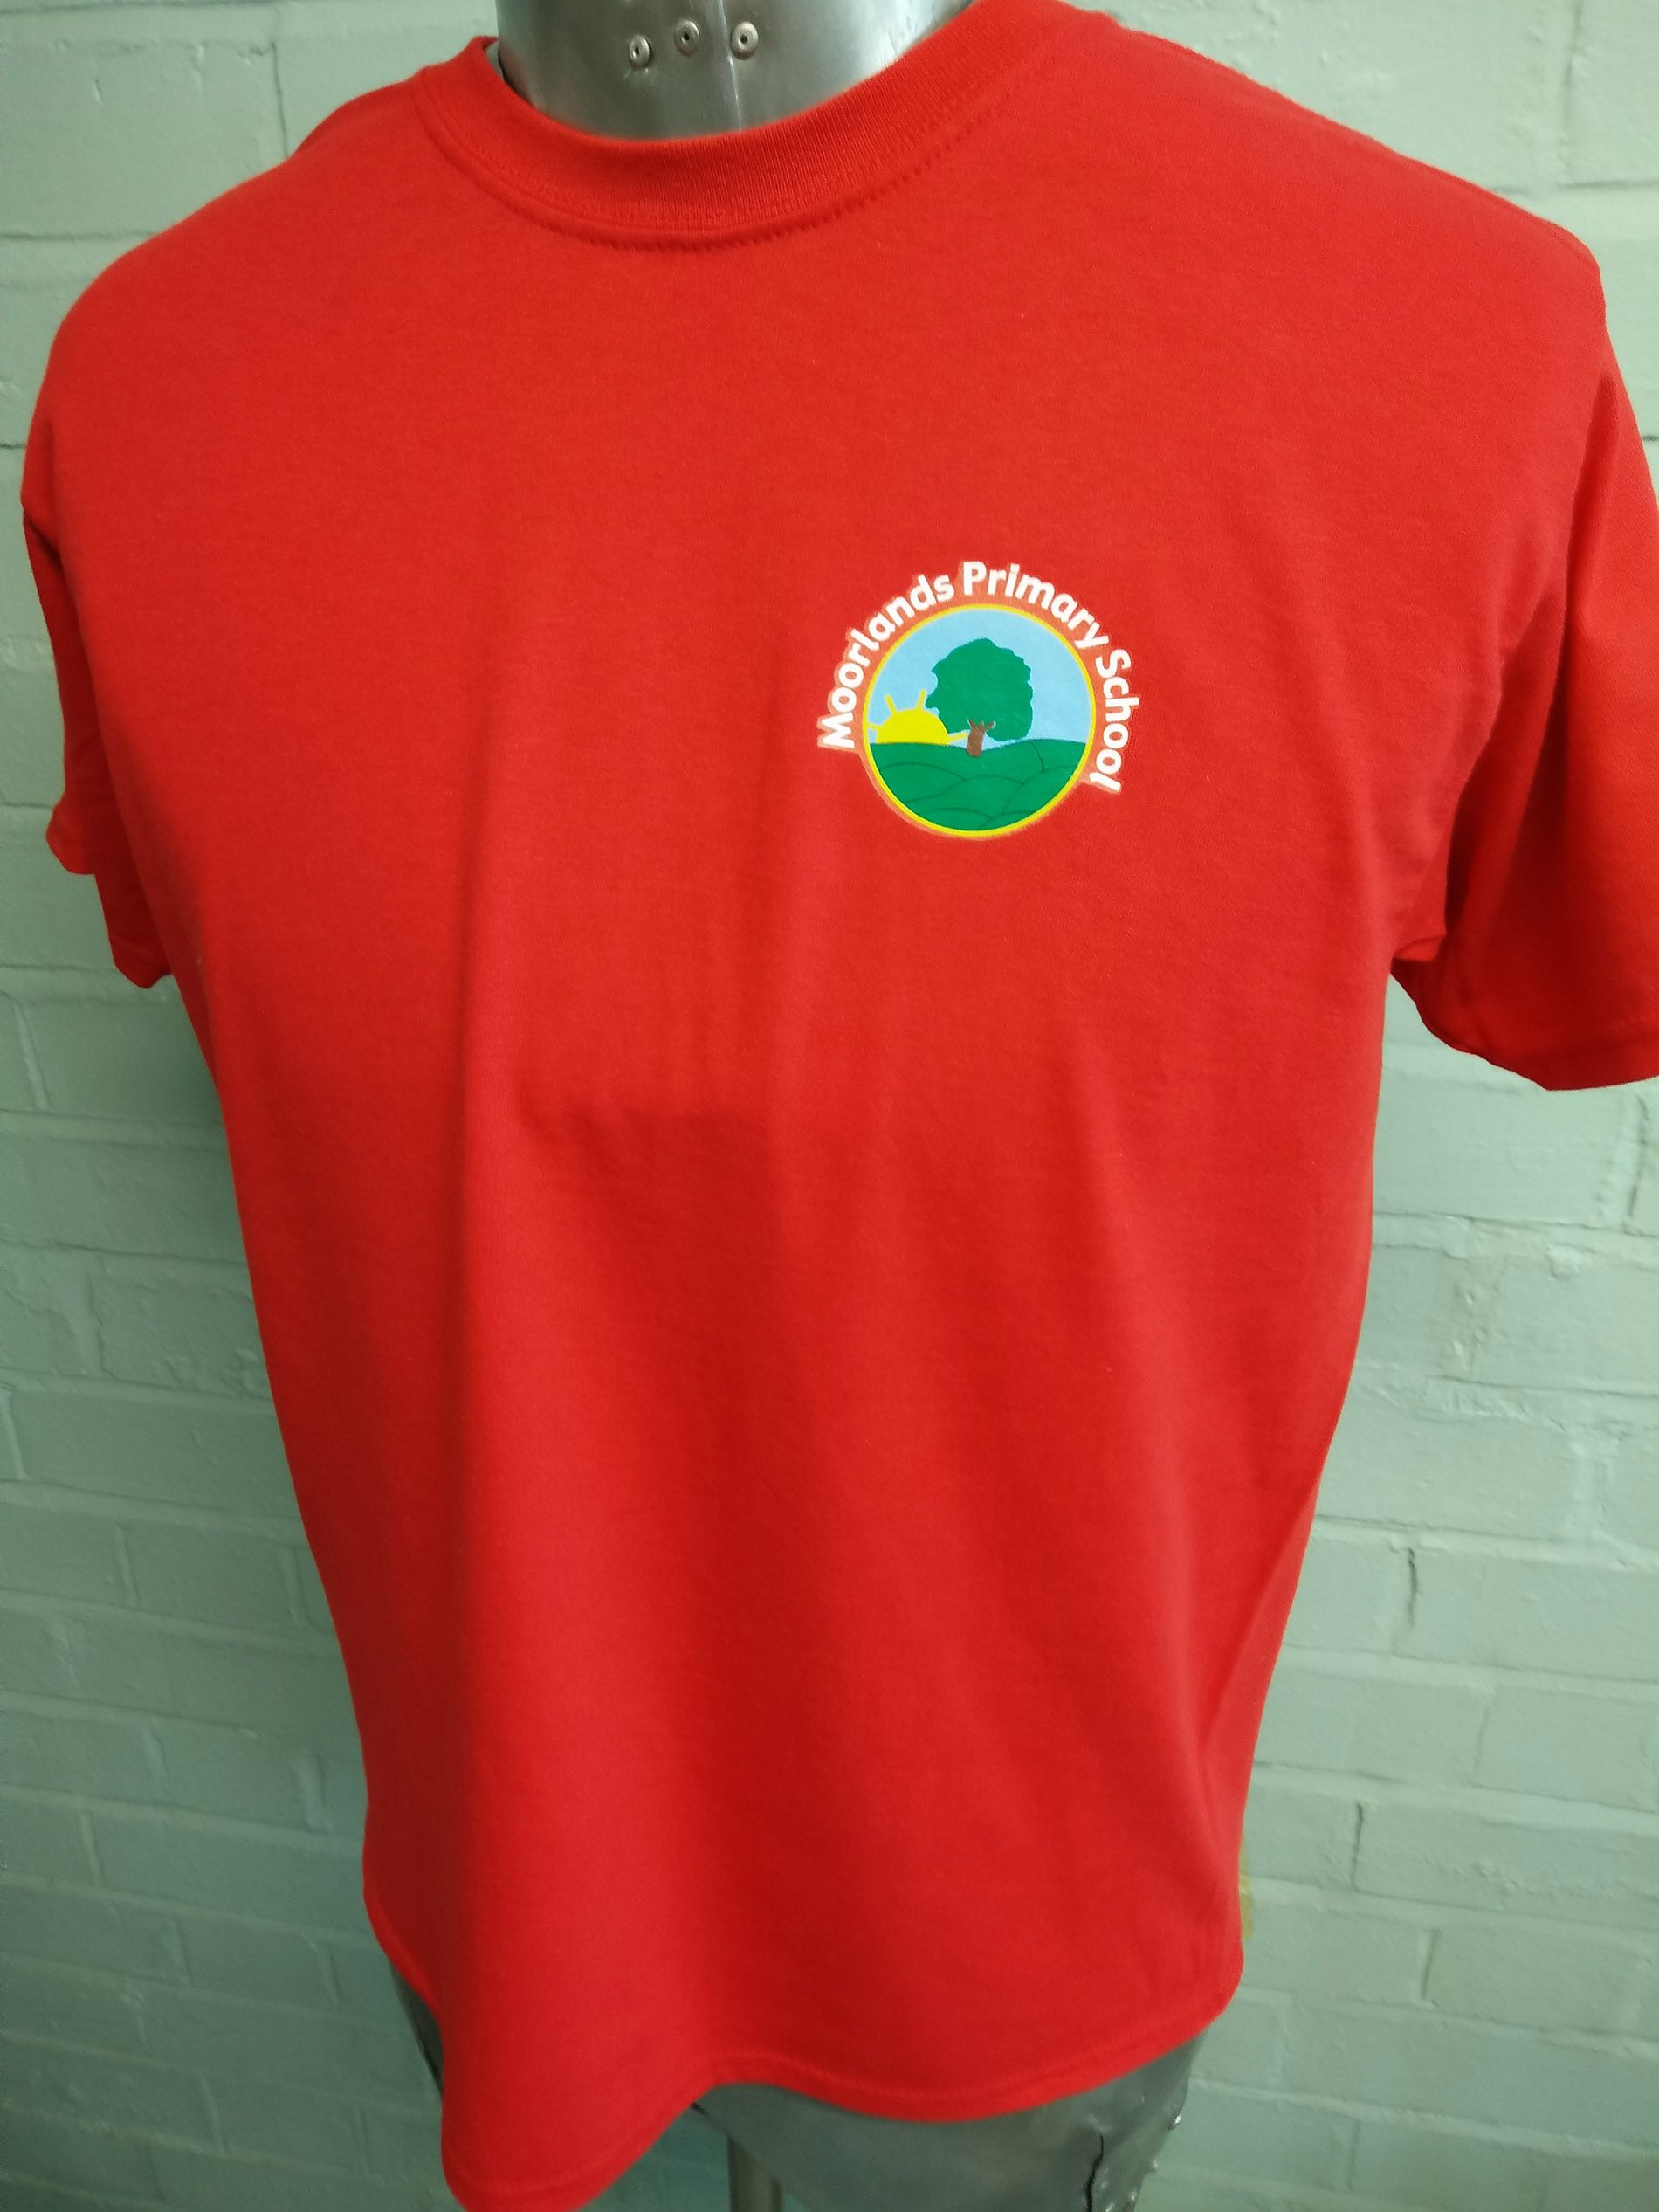 Short Sleeved Red Round Necked Cotton T Shirts For Moorlands Primary